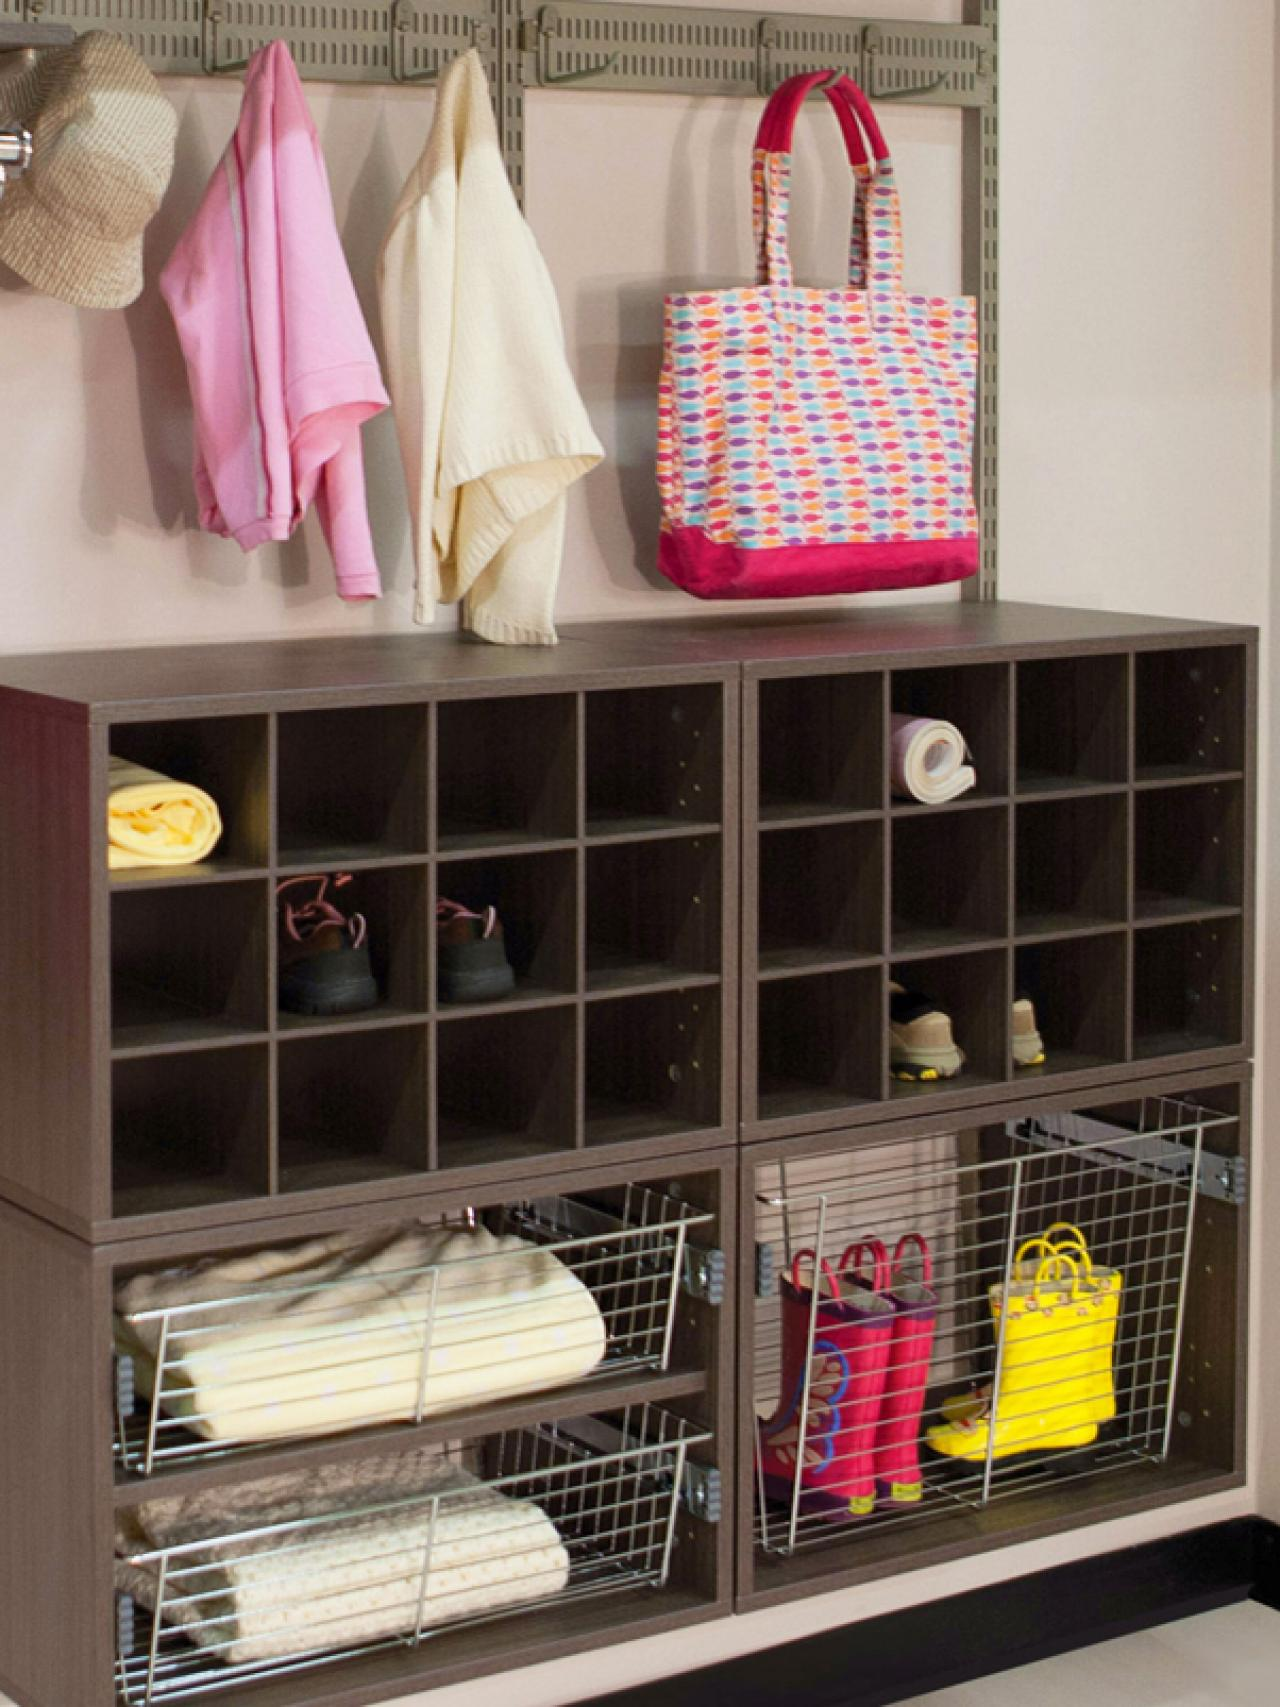 Mudroom storage ideas home remodeling ideas for Living room shoe storage ideas